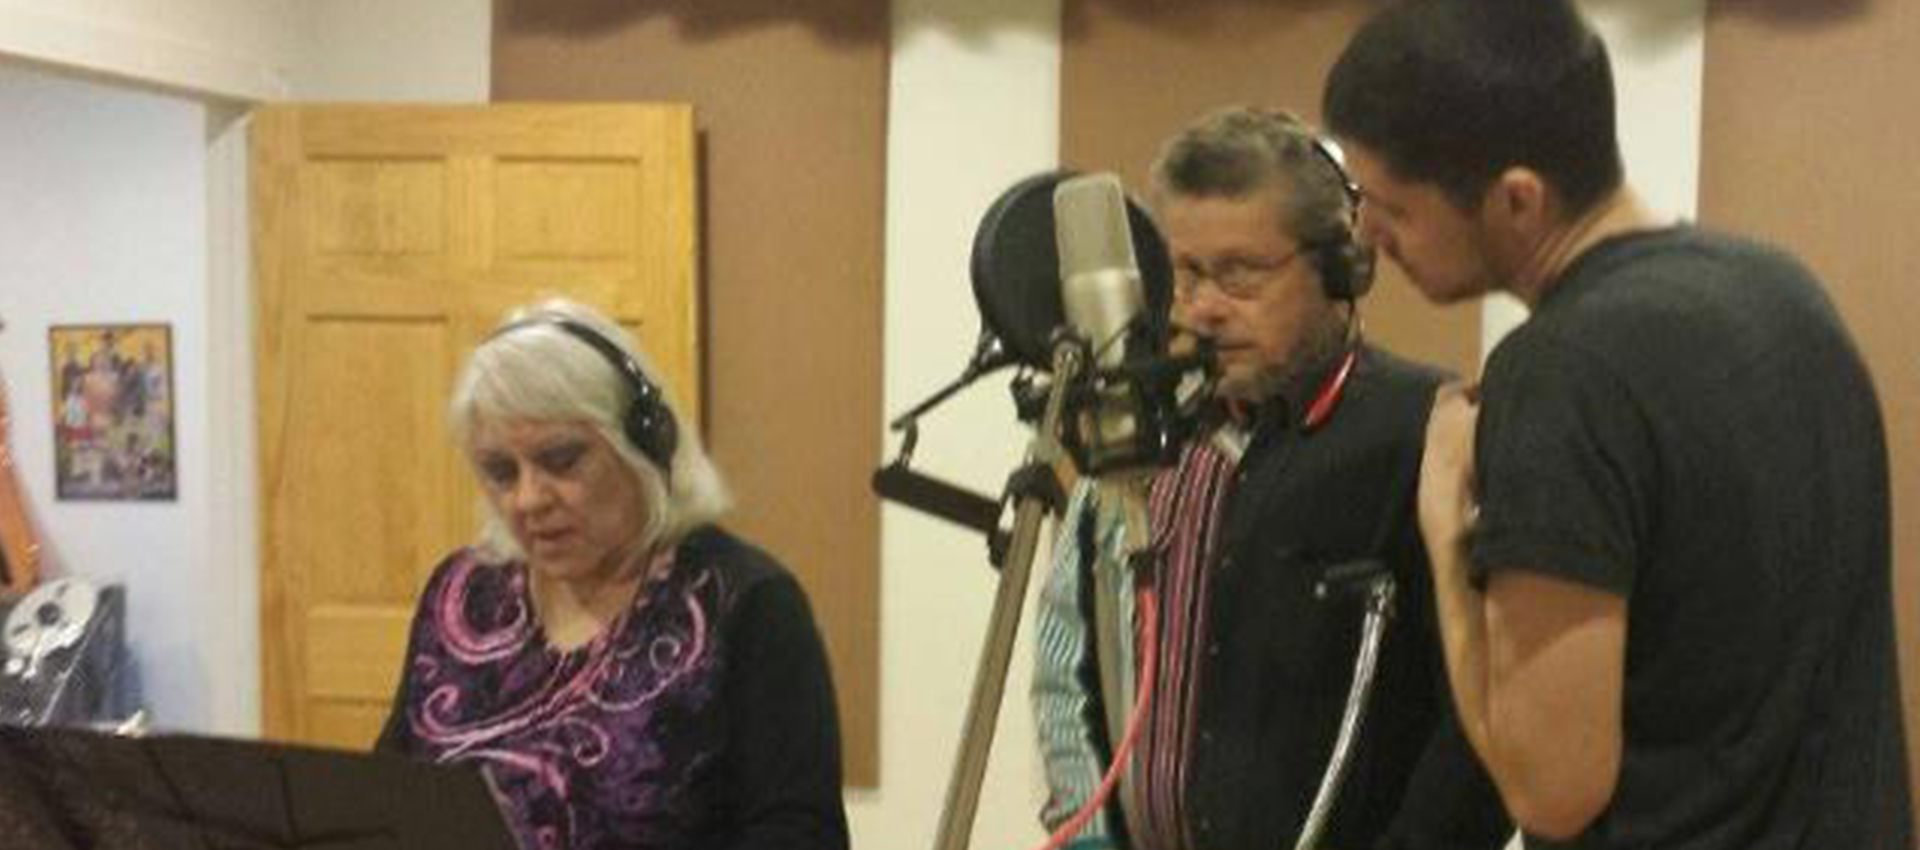 Darrell, Nemra and son, Sam in the Studio